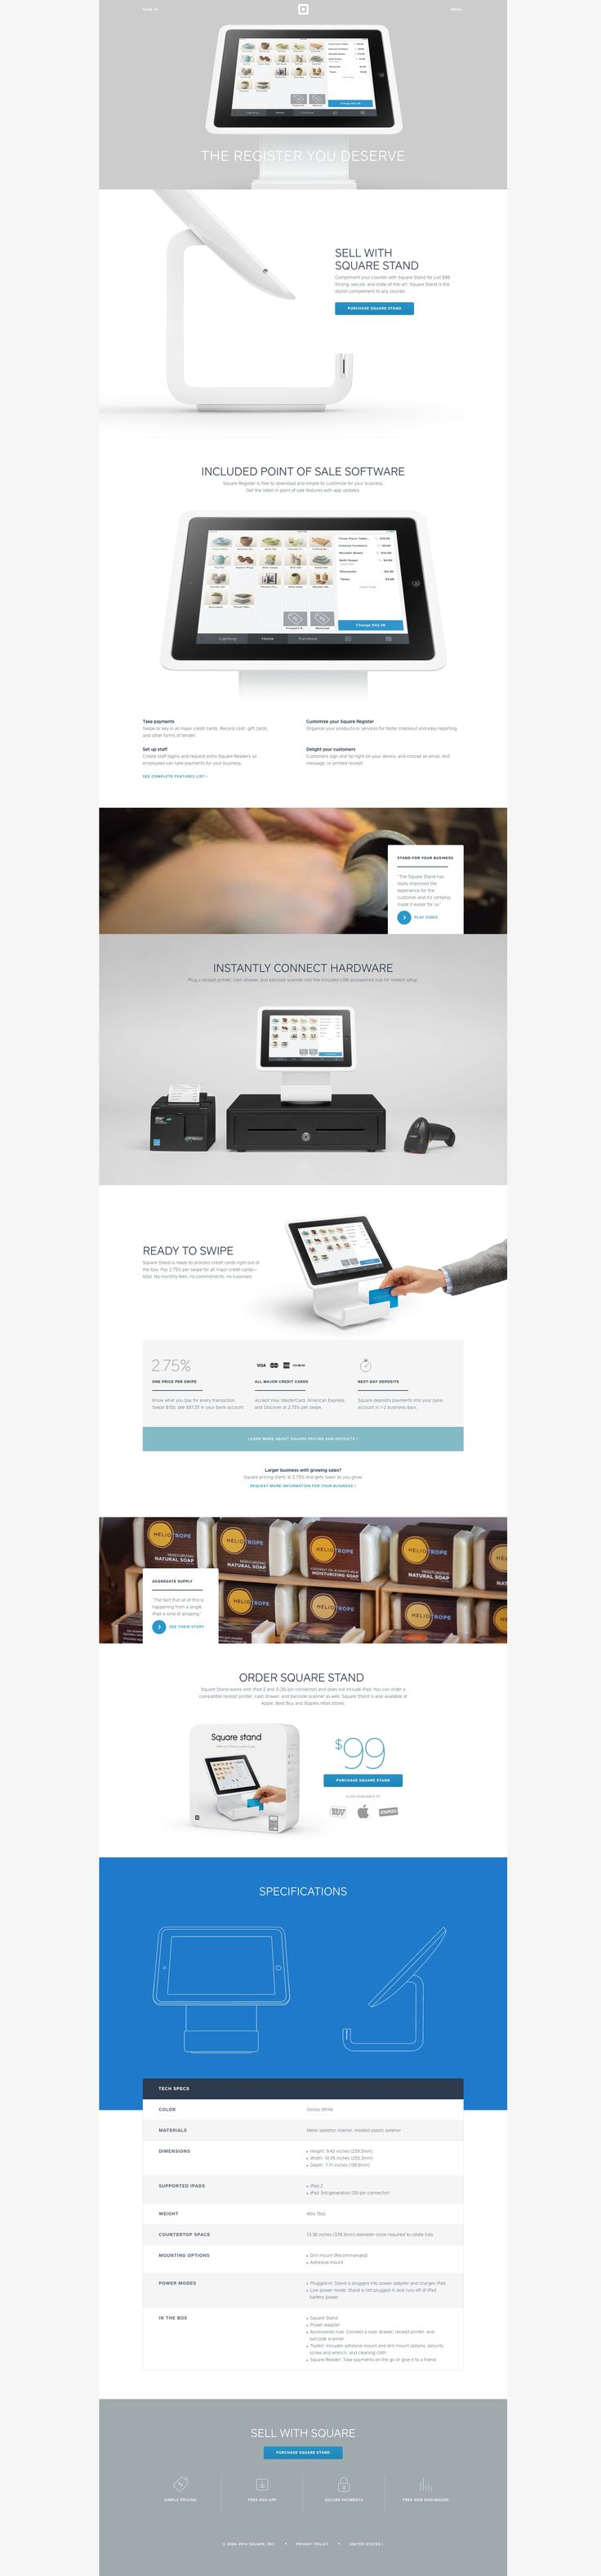 Square Stand   Turn your iPad into a complete point of sale system